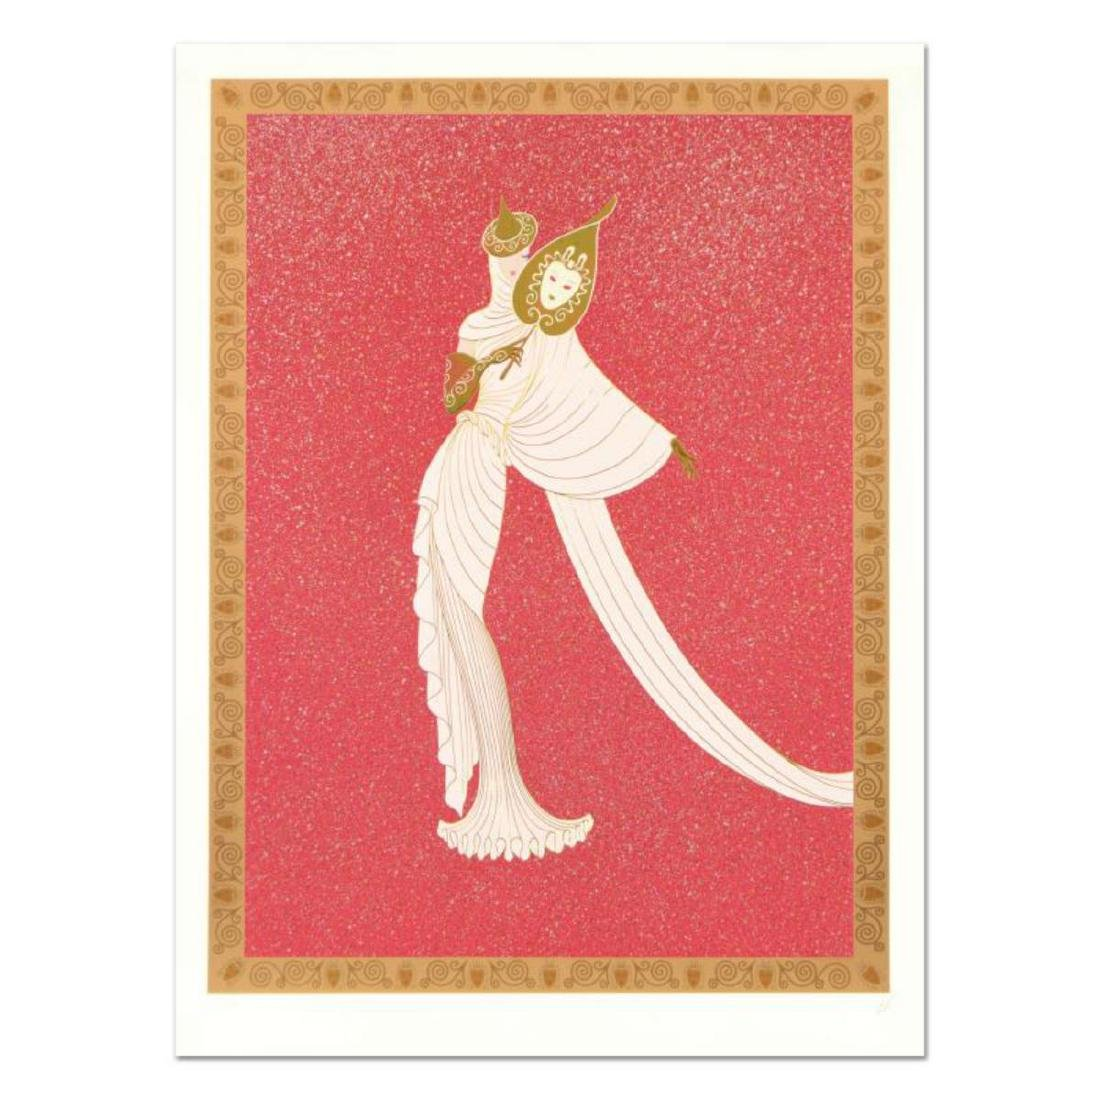 """Erte (1892-1990), """"Tanagra Red"""" Limited Edition"""